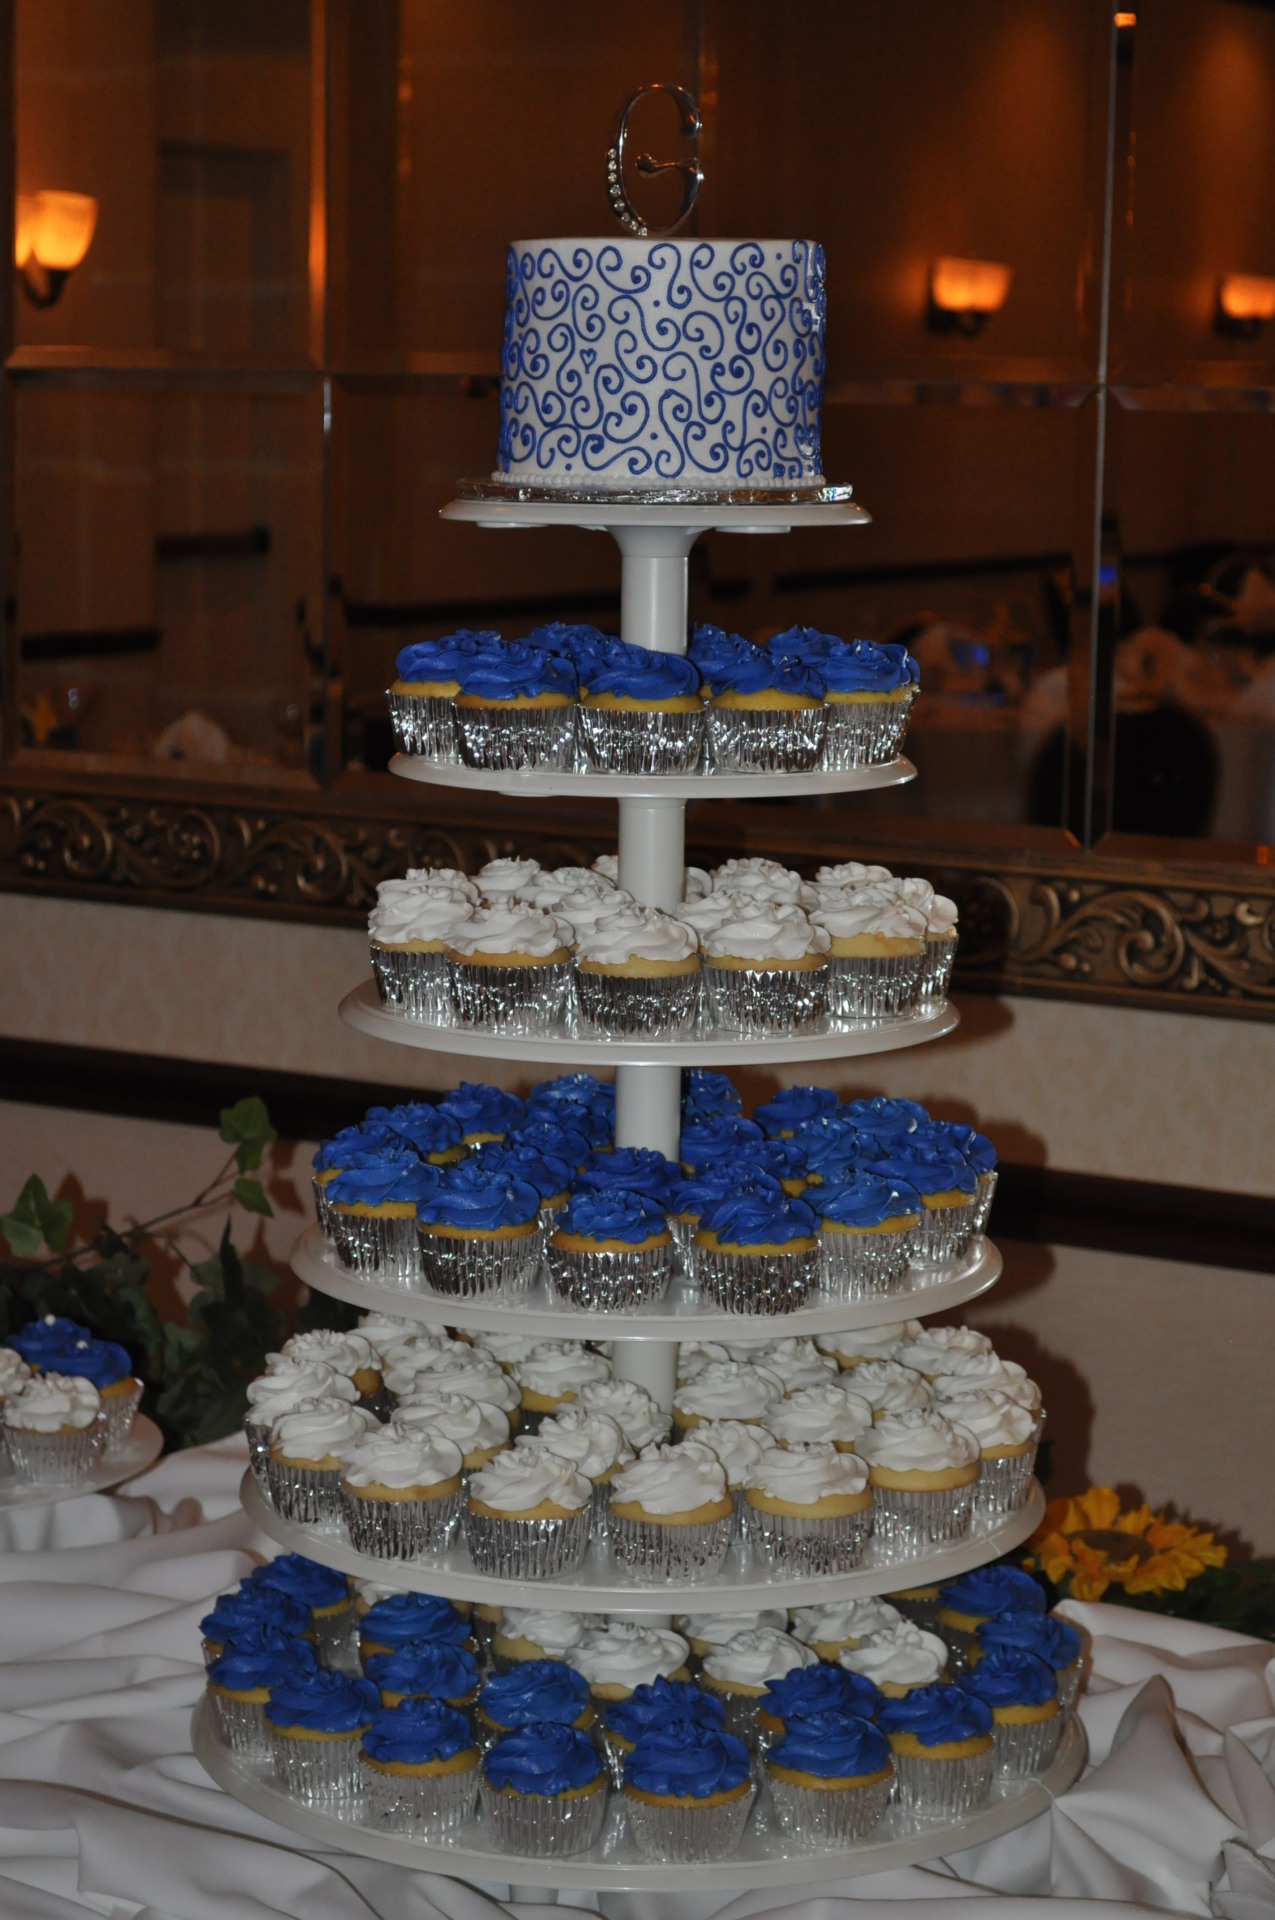 Royal Blue and White cupcake tower